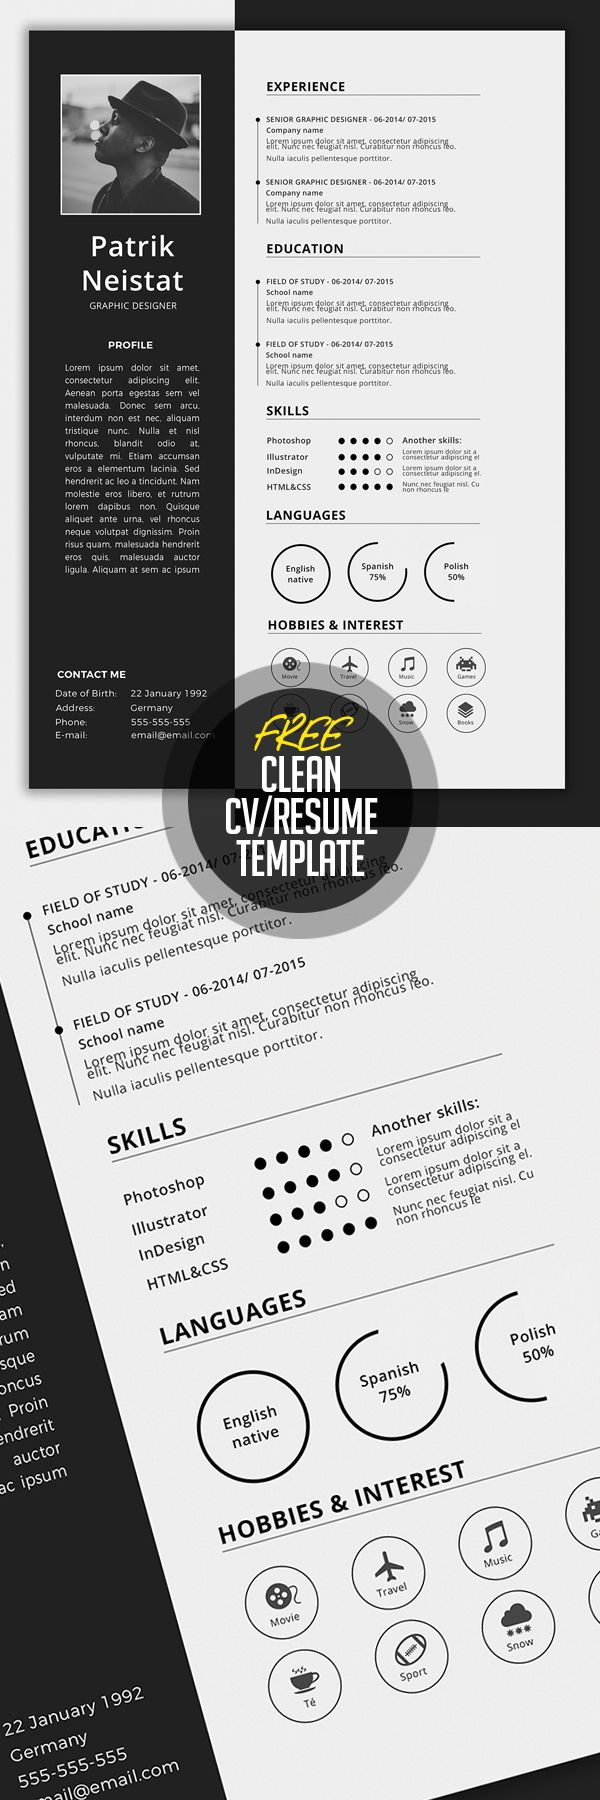 Simple CV/Resume Template Free Download … | Pinteres…